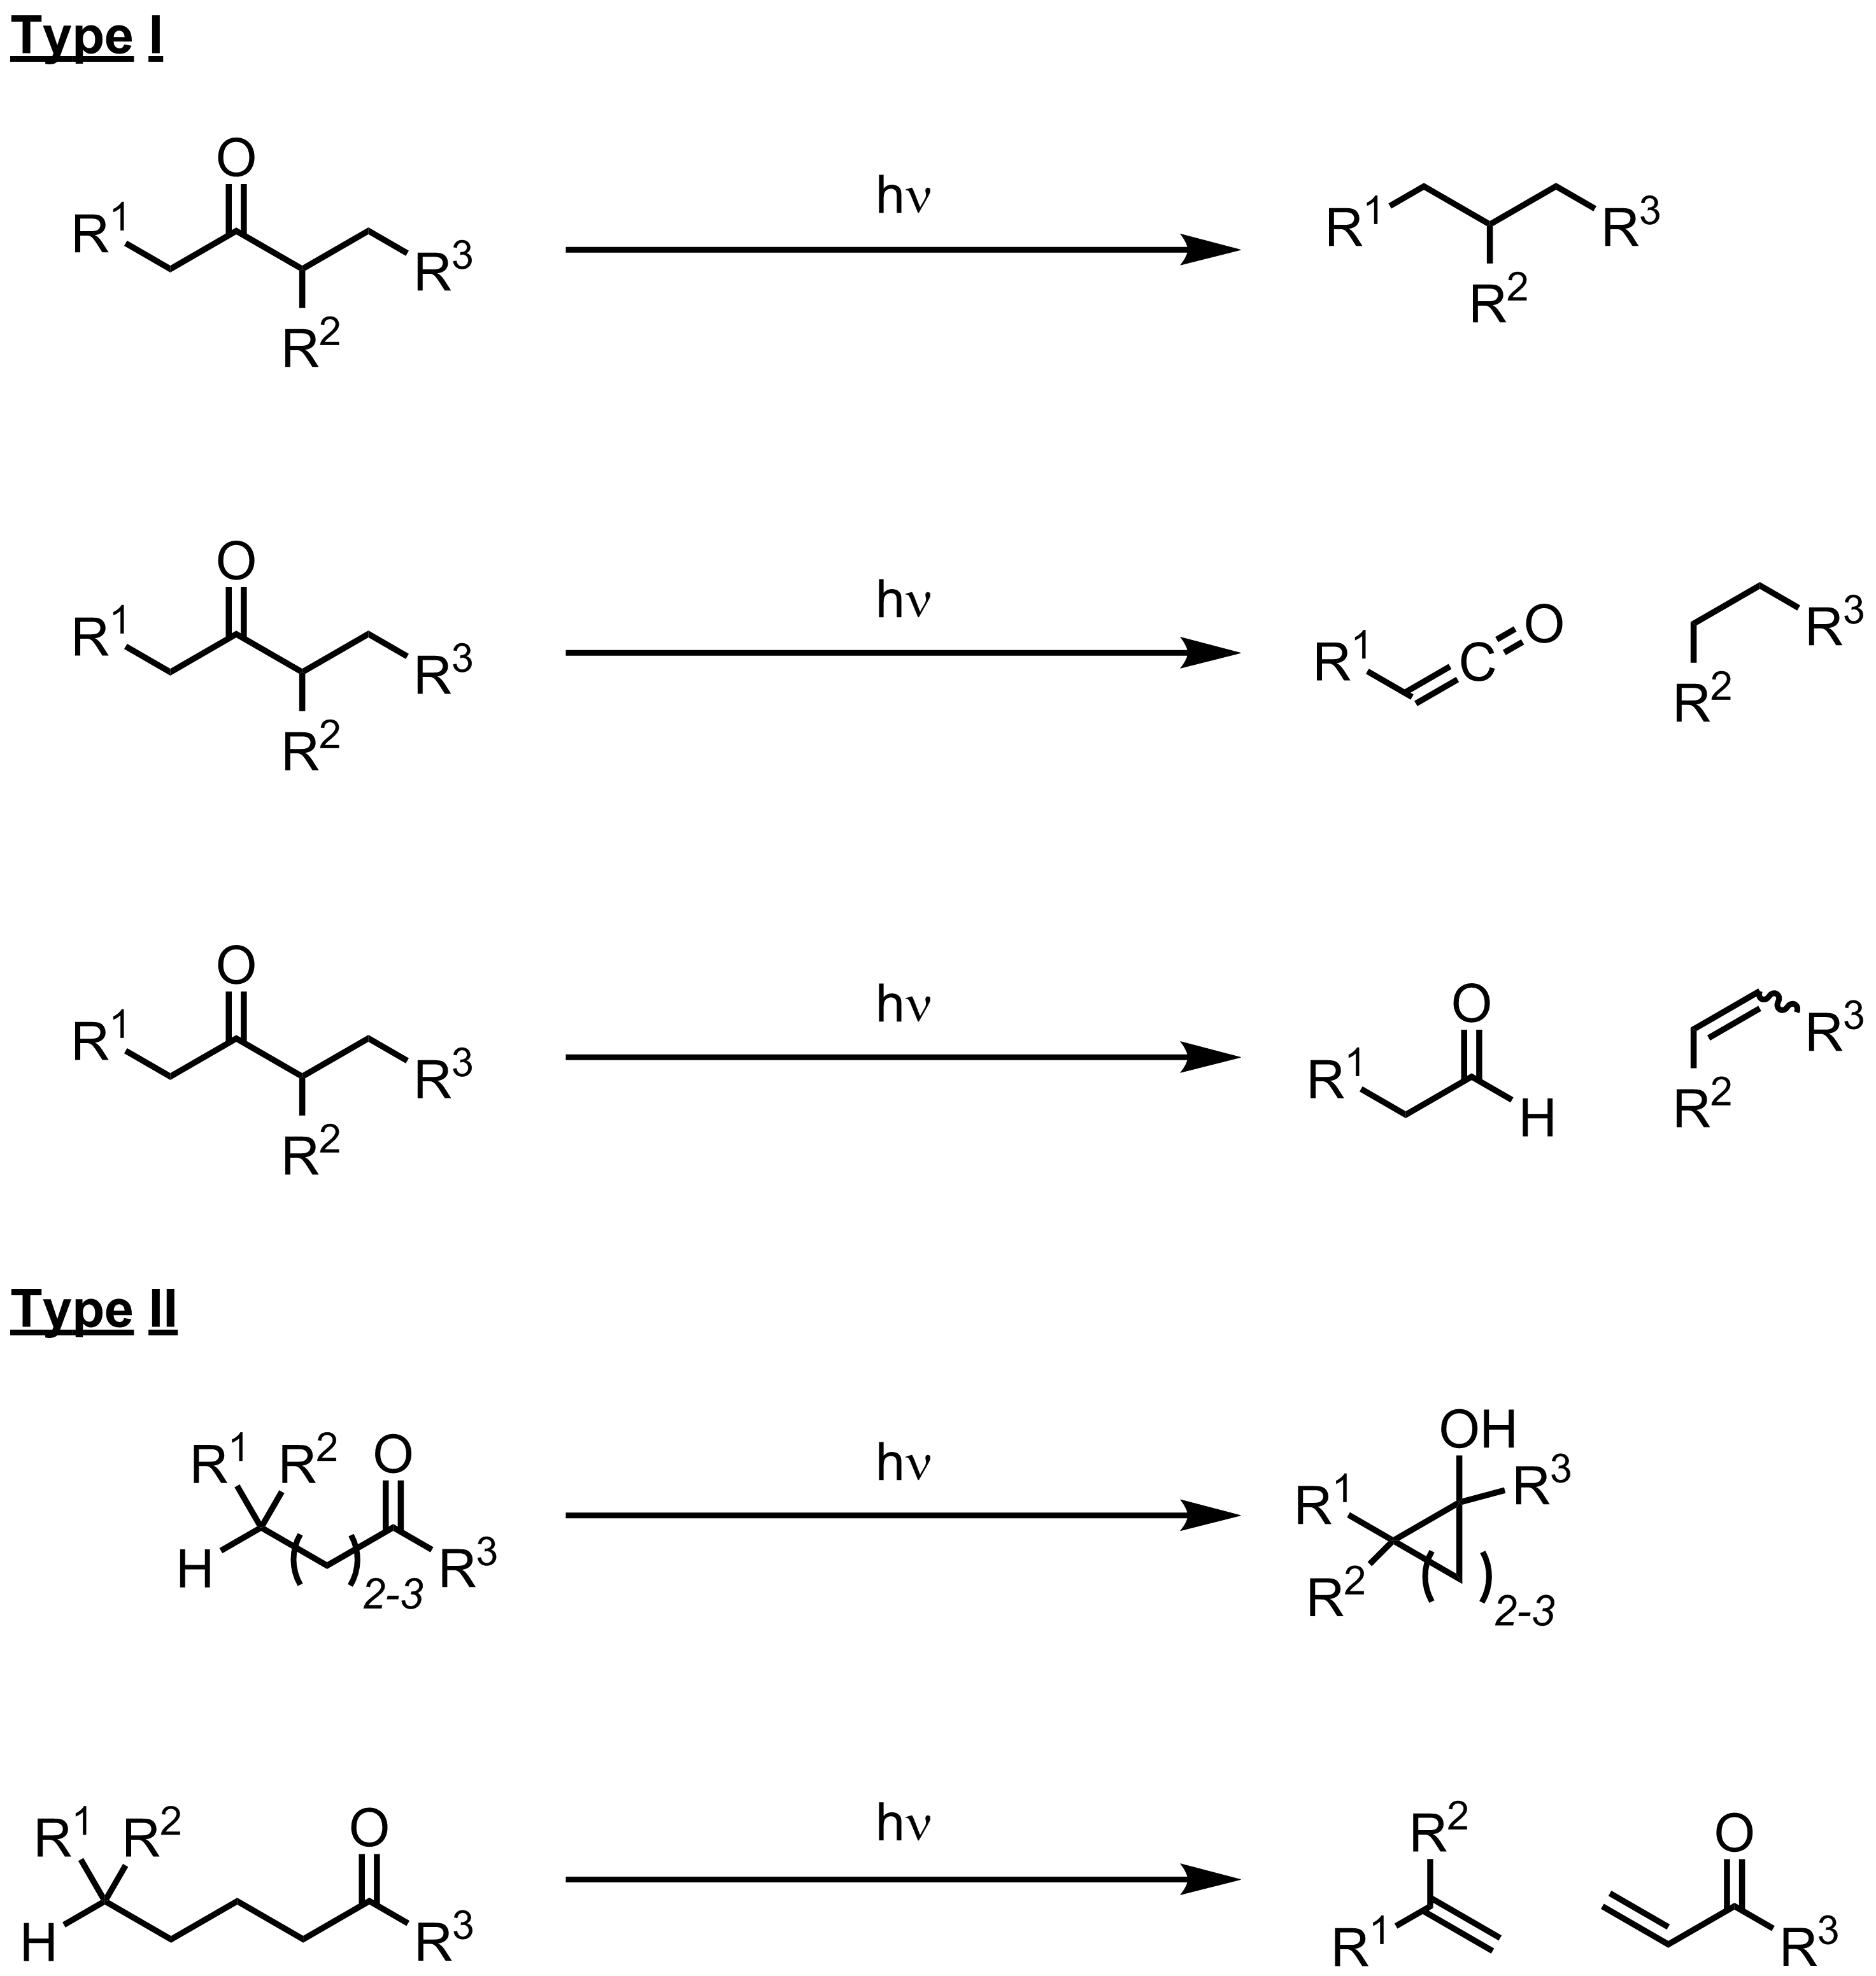 Schematic representation of the Norrish Reaction.